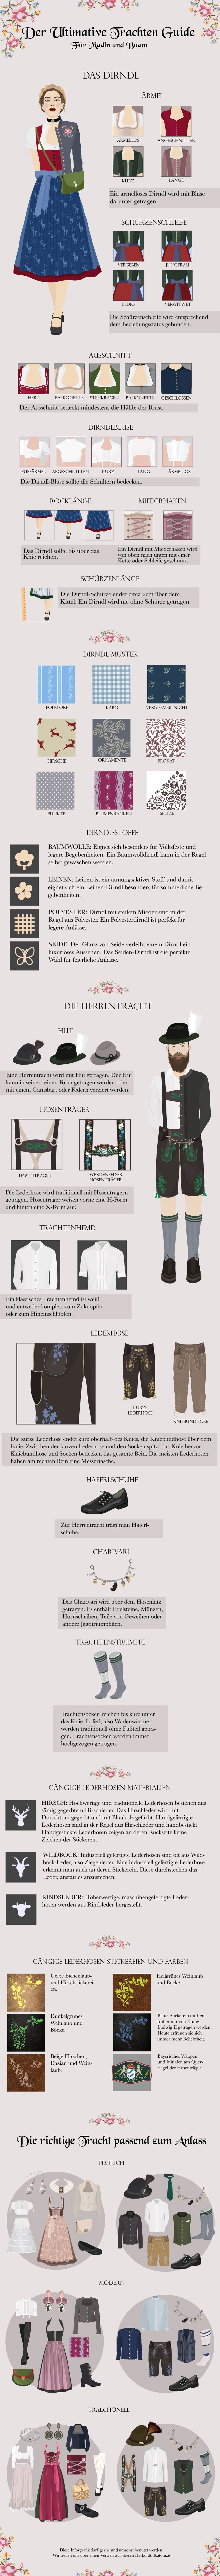 Infographic - Trachten guide